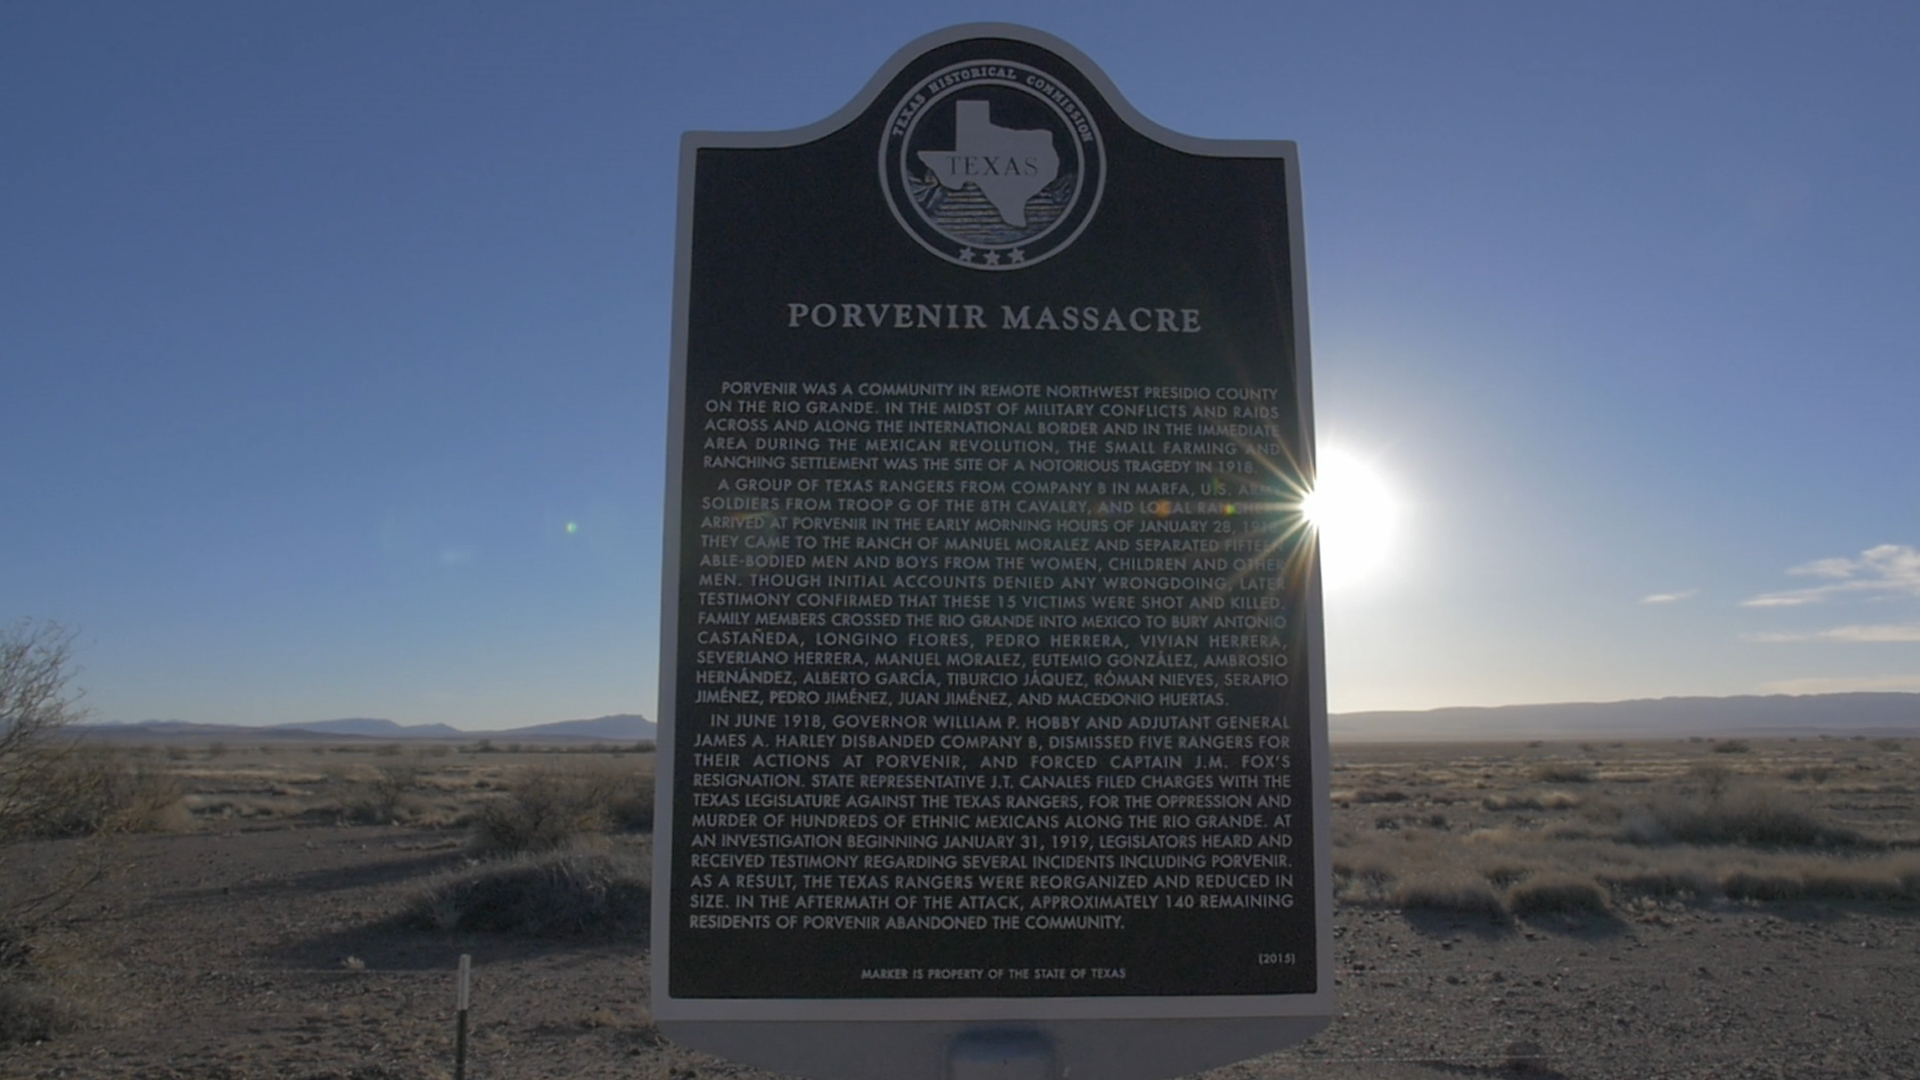 A historical marker commemorates the 1918 massacre at Porvenir, Texas.